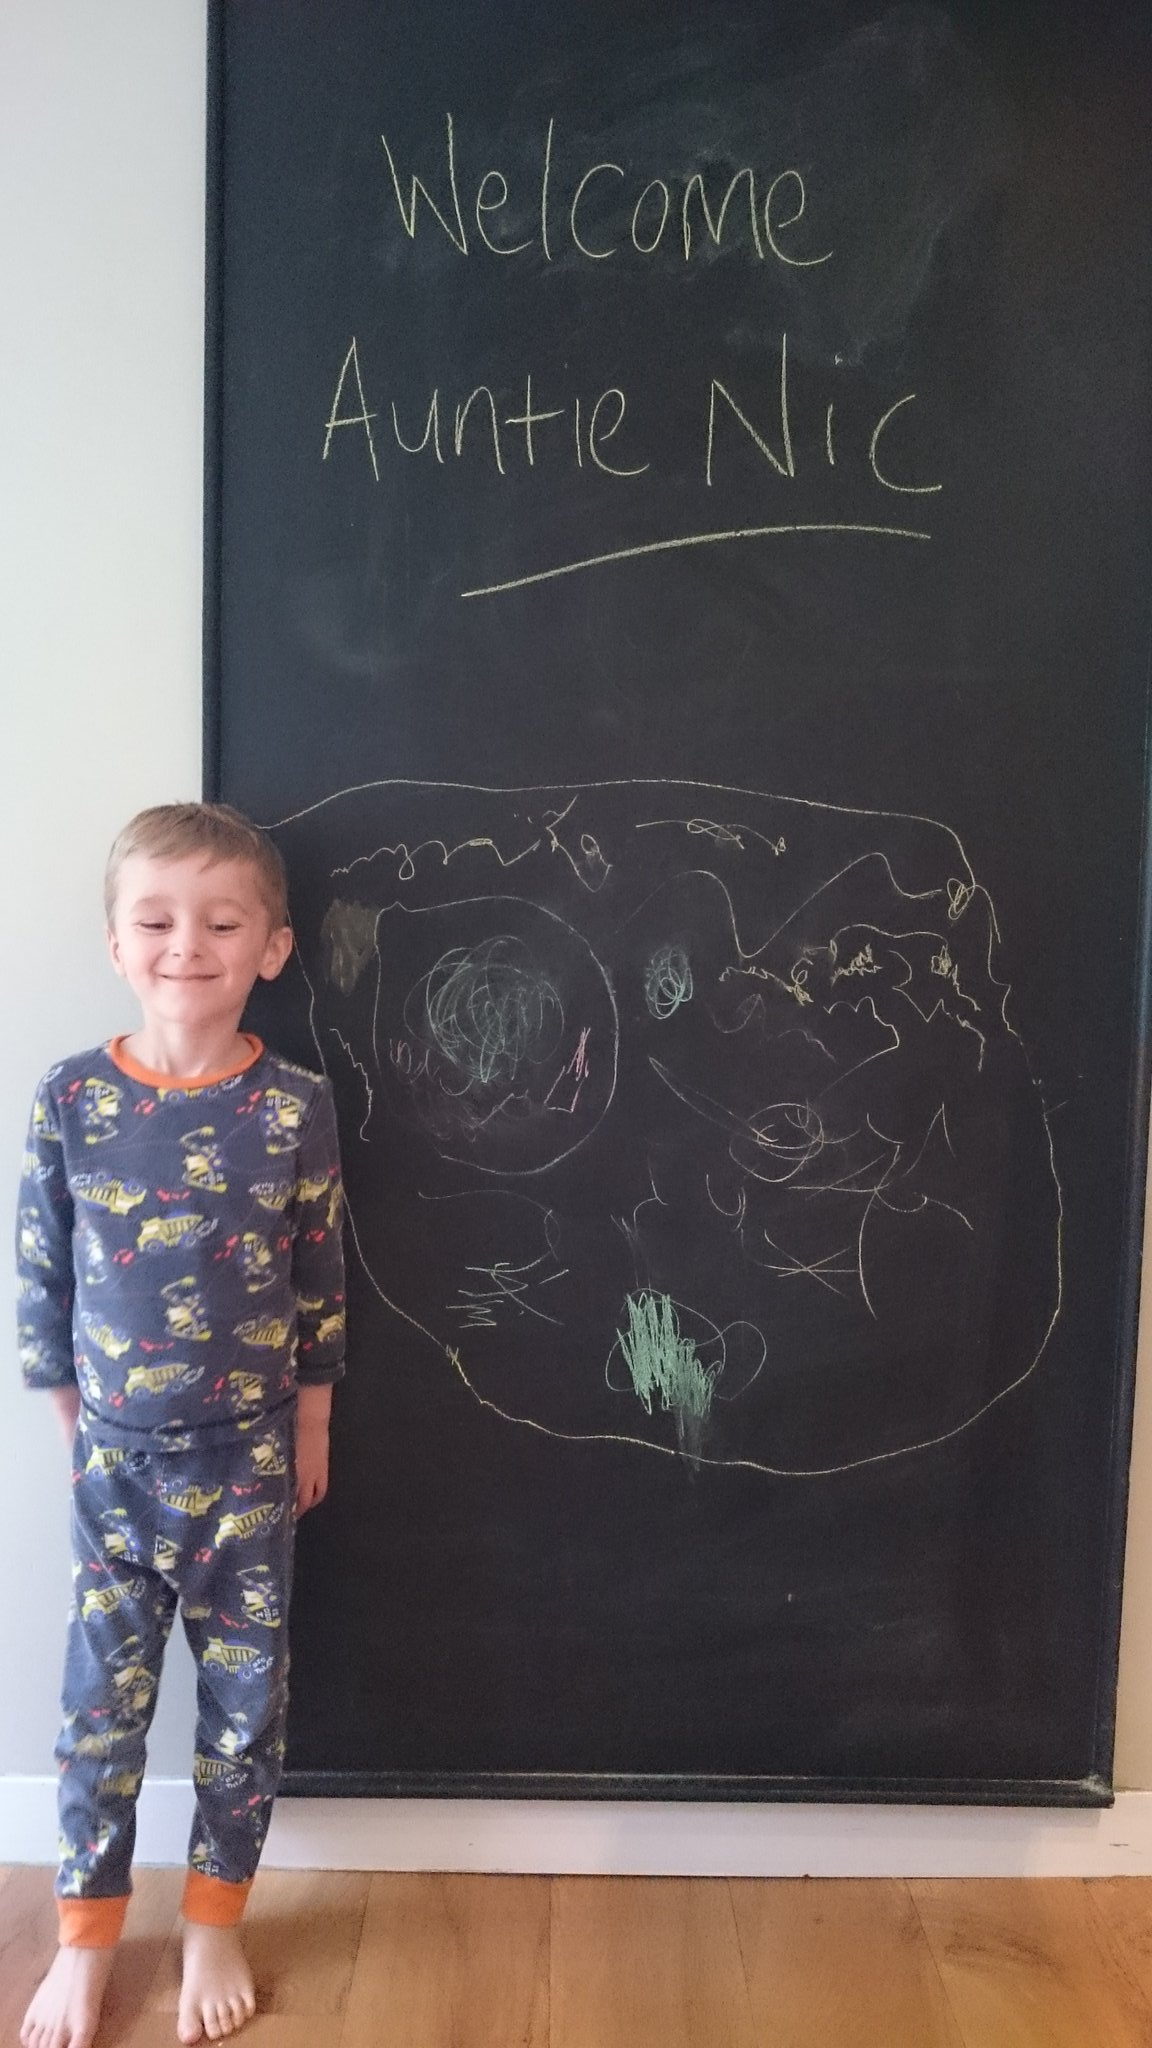 Thomas waiting for his Auntie Nic to arrive @CenterParcsUK Sherwood Forest! #justimagine https://t.co/3HOHfGMZp1